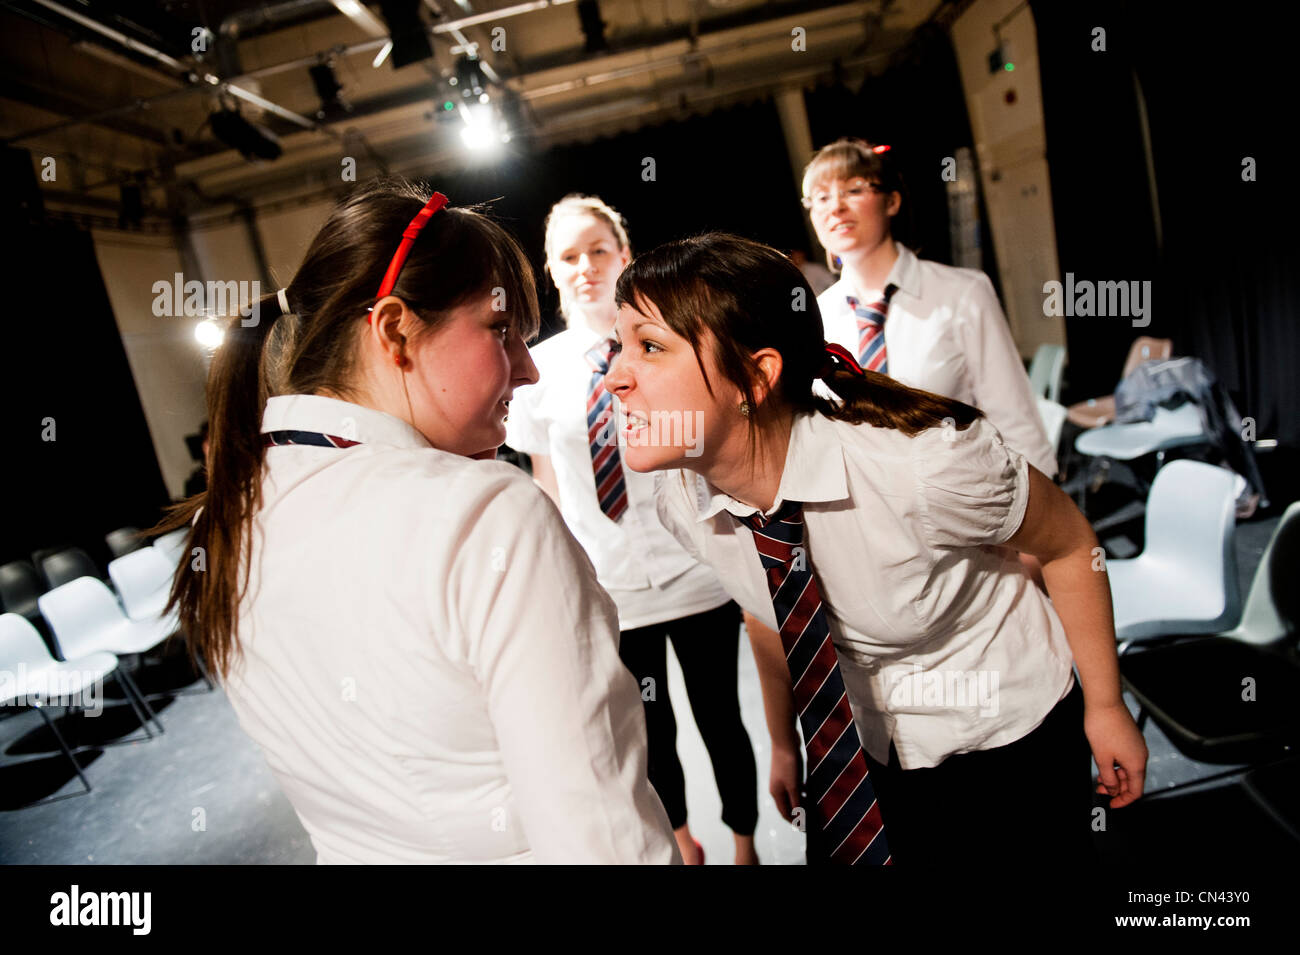 Undergraduate students acting in the Theatre Film and Television department, Aberystwyth University, Wales UK - Stock Image